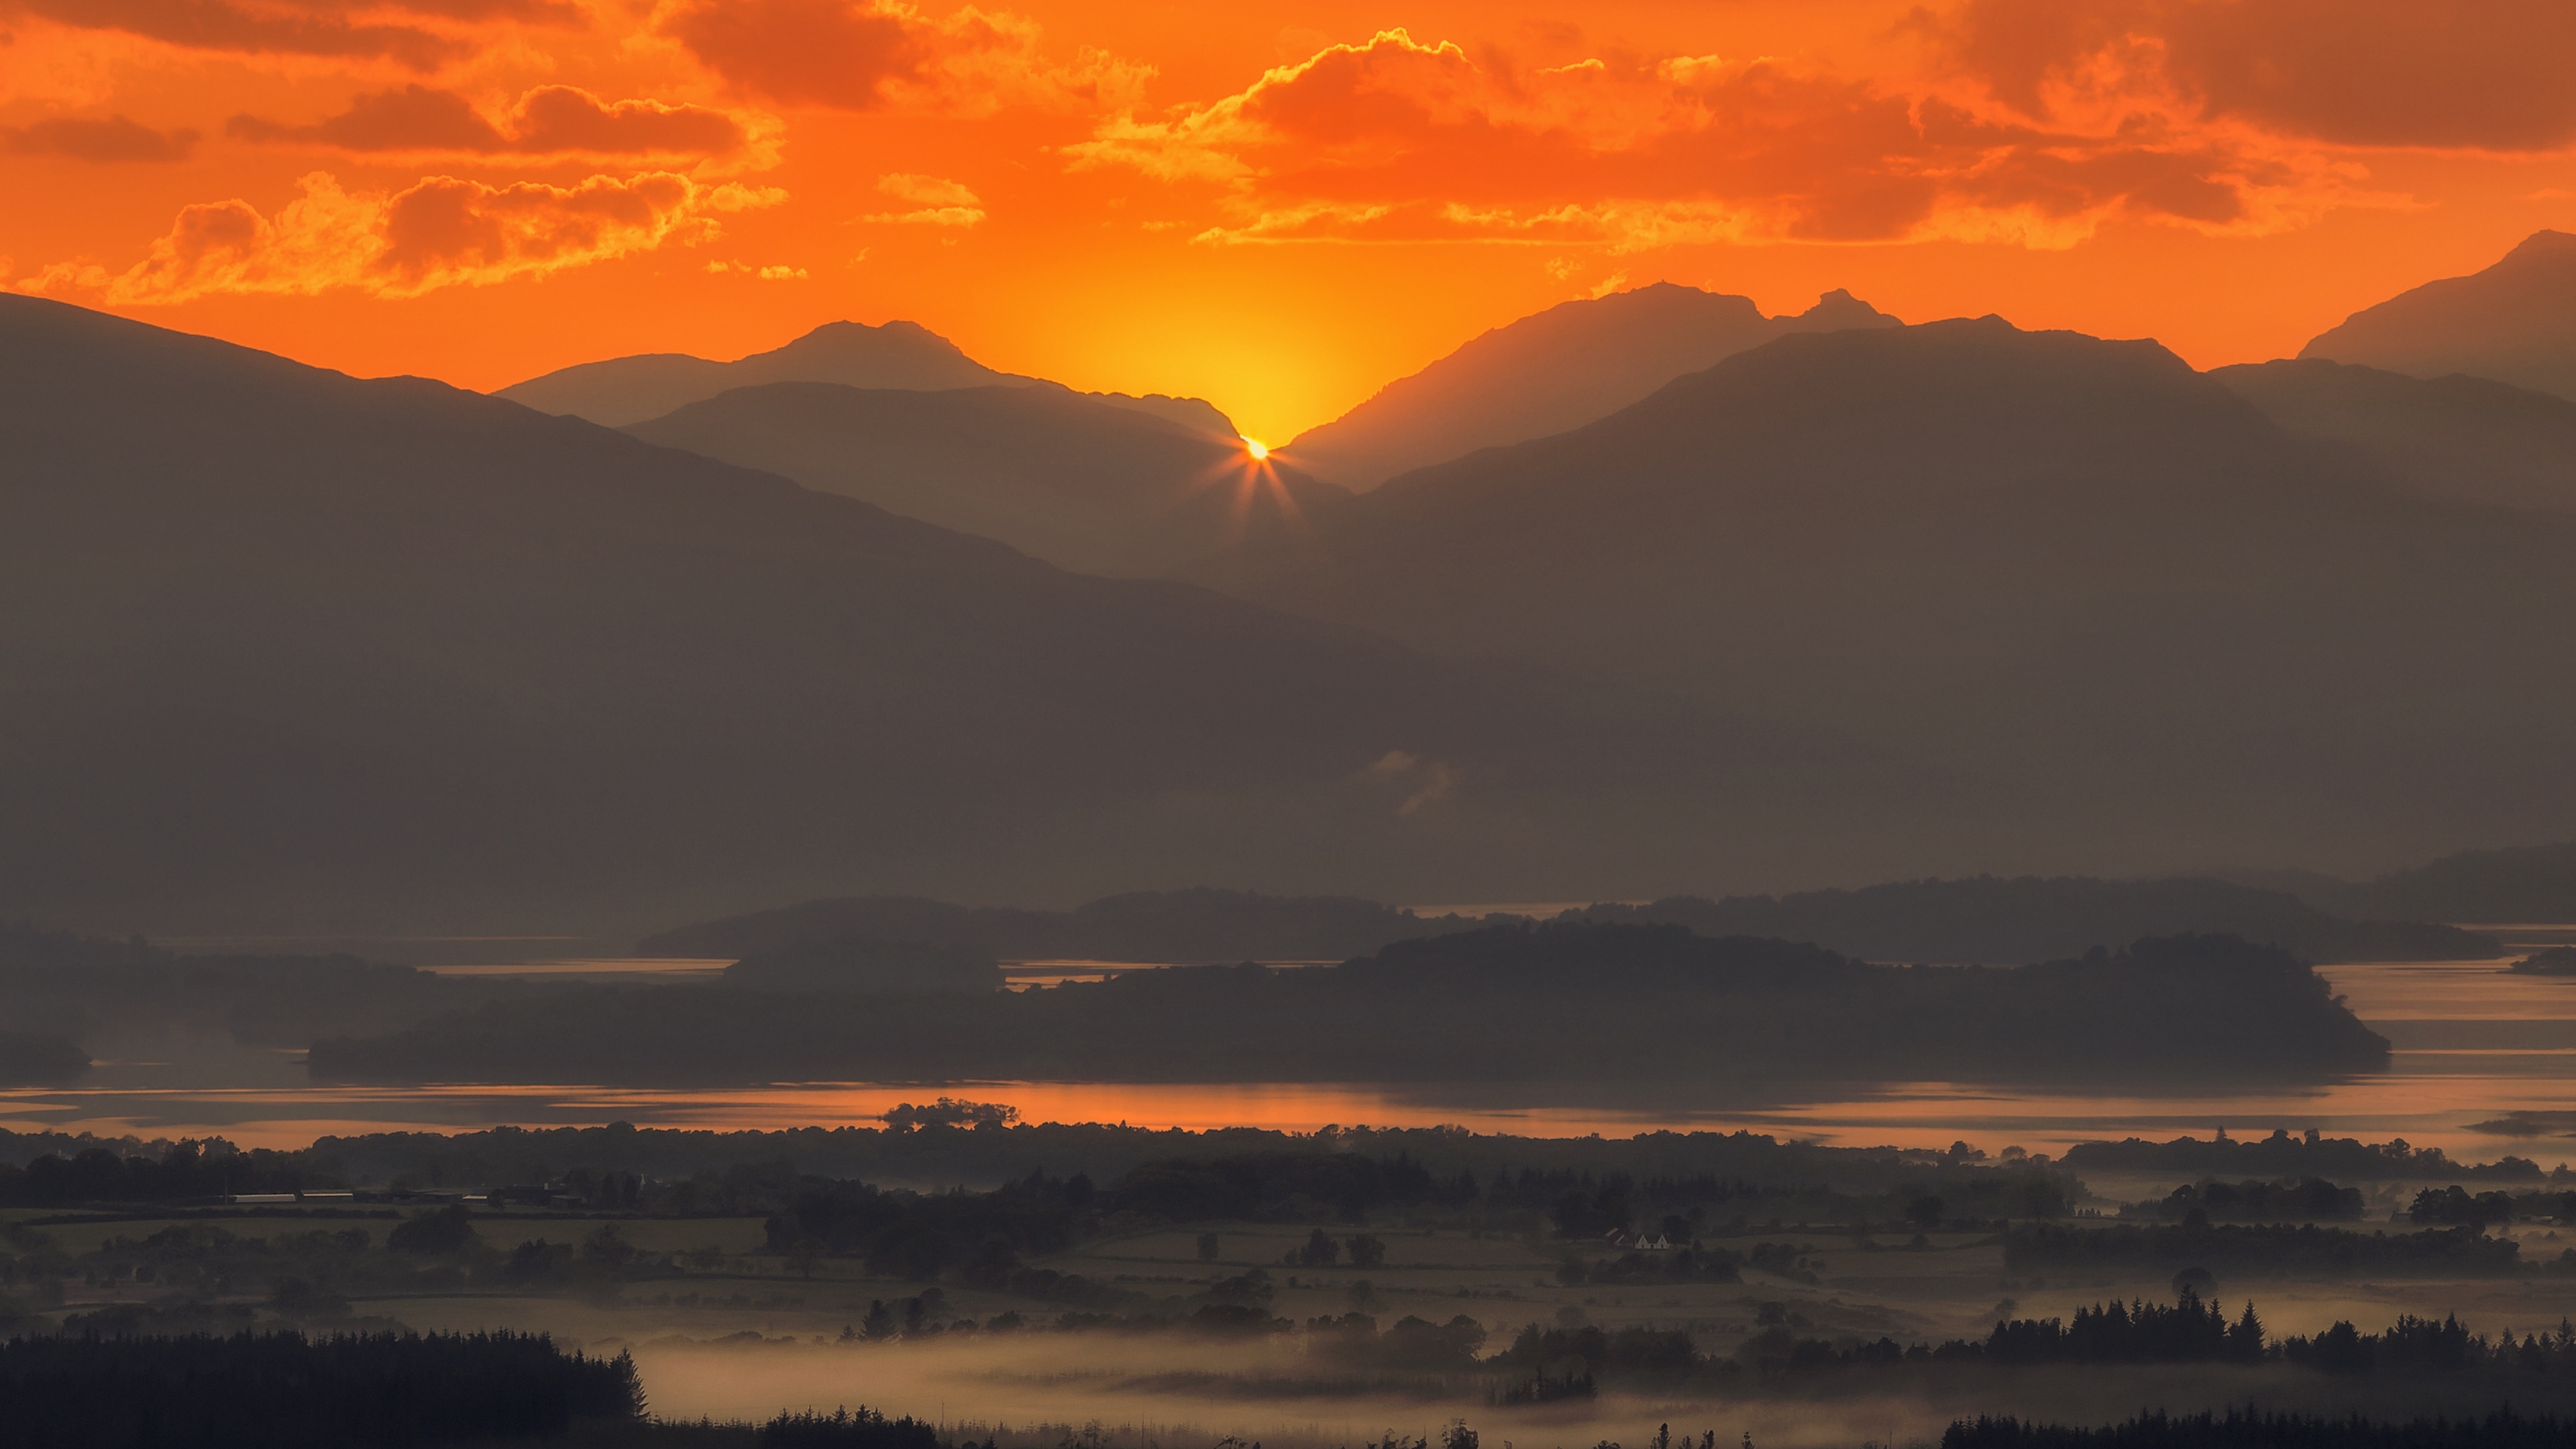 mountains sunset fog scotland 4k 1541116875 - mountains, sunset, fog, scotland 4k - sunset, Mountains, fog